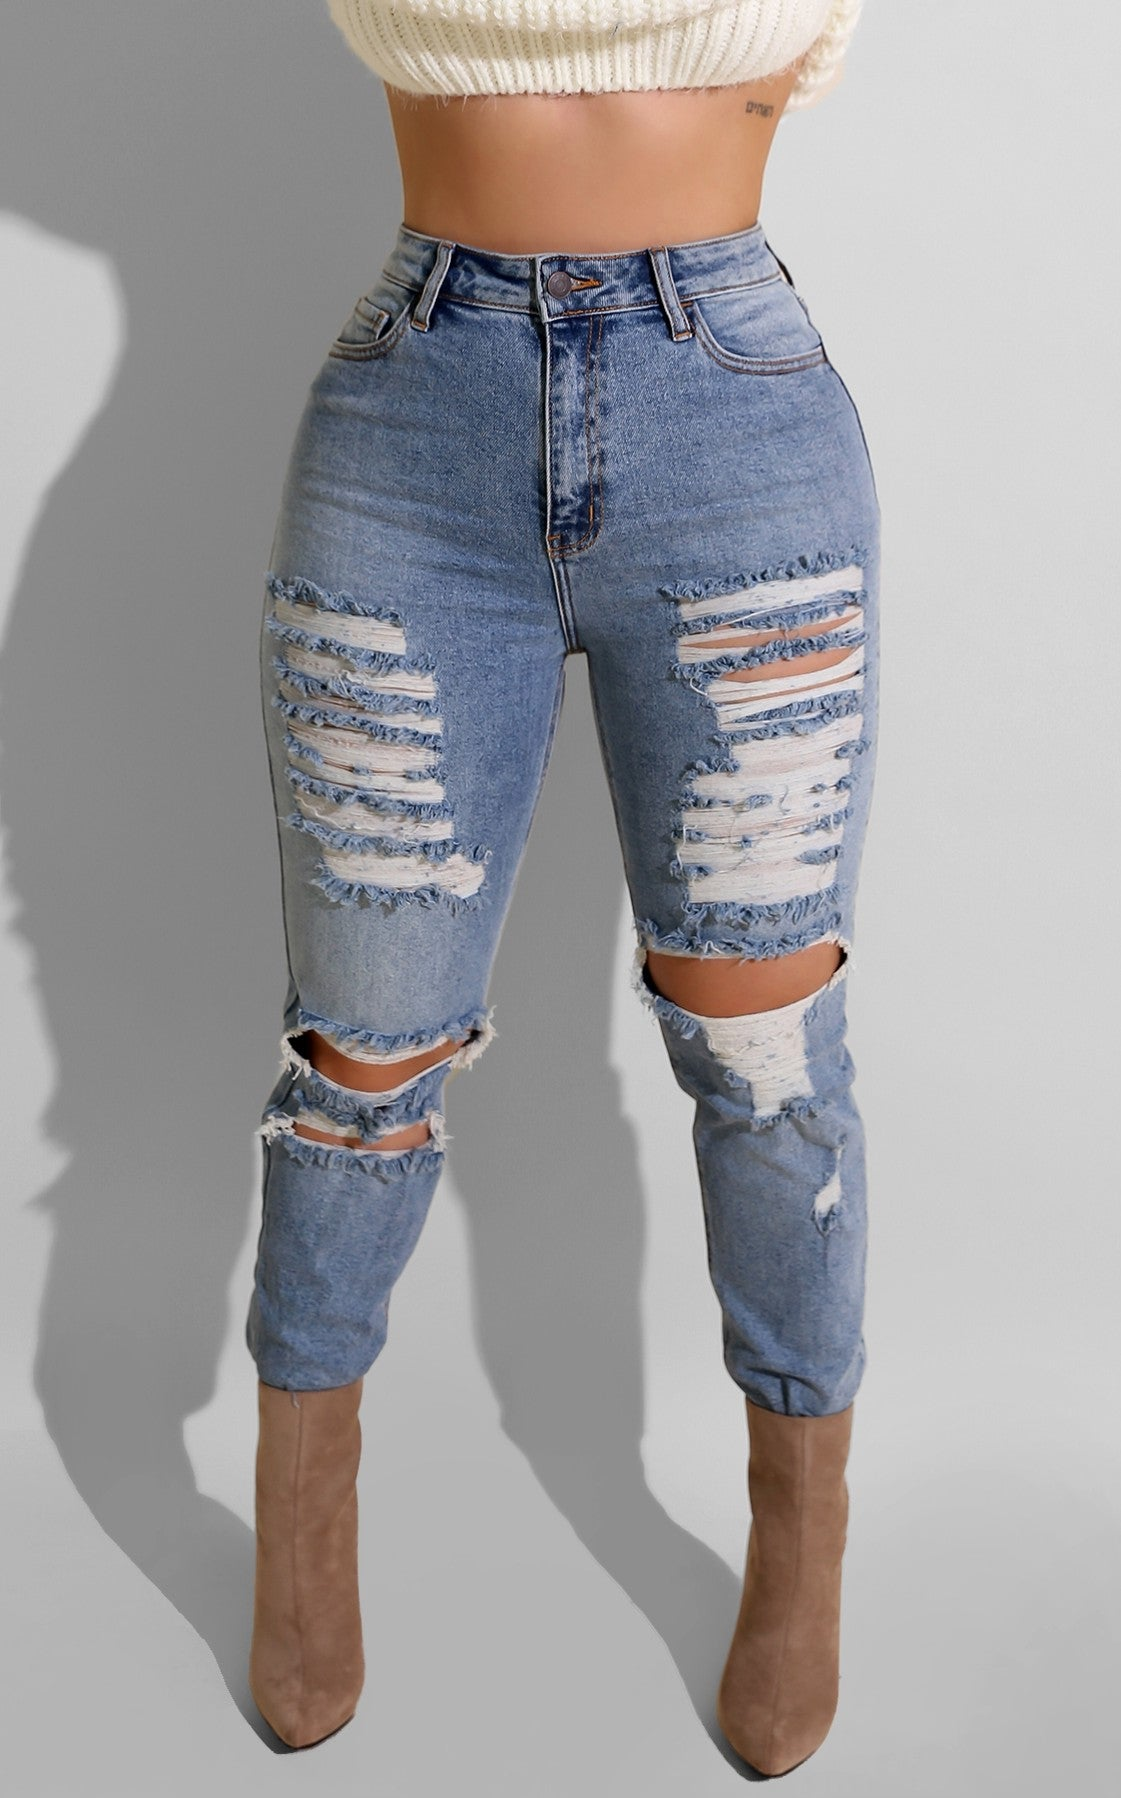 Unstressed Jeans